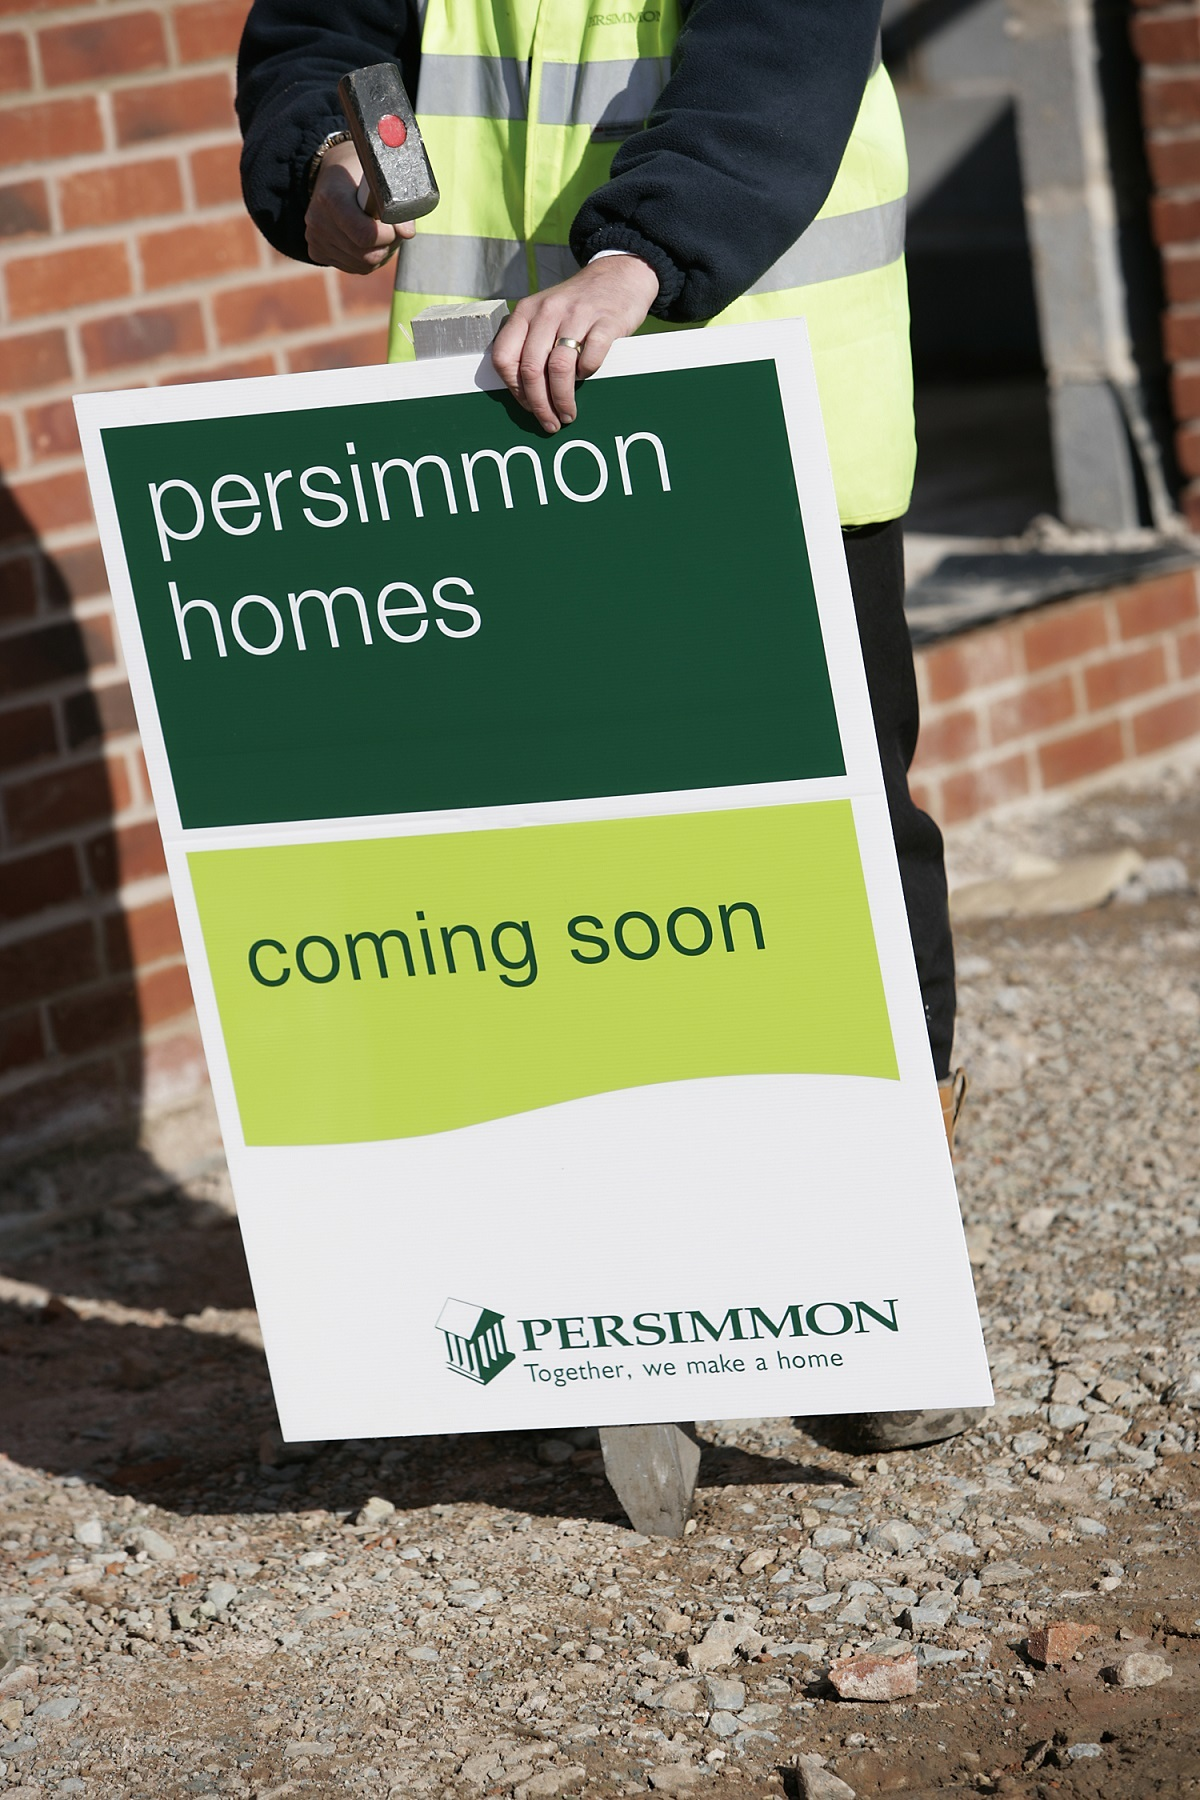 Persimmon Homes has major plans for 2019